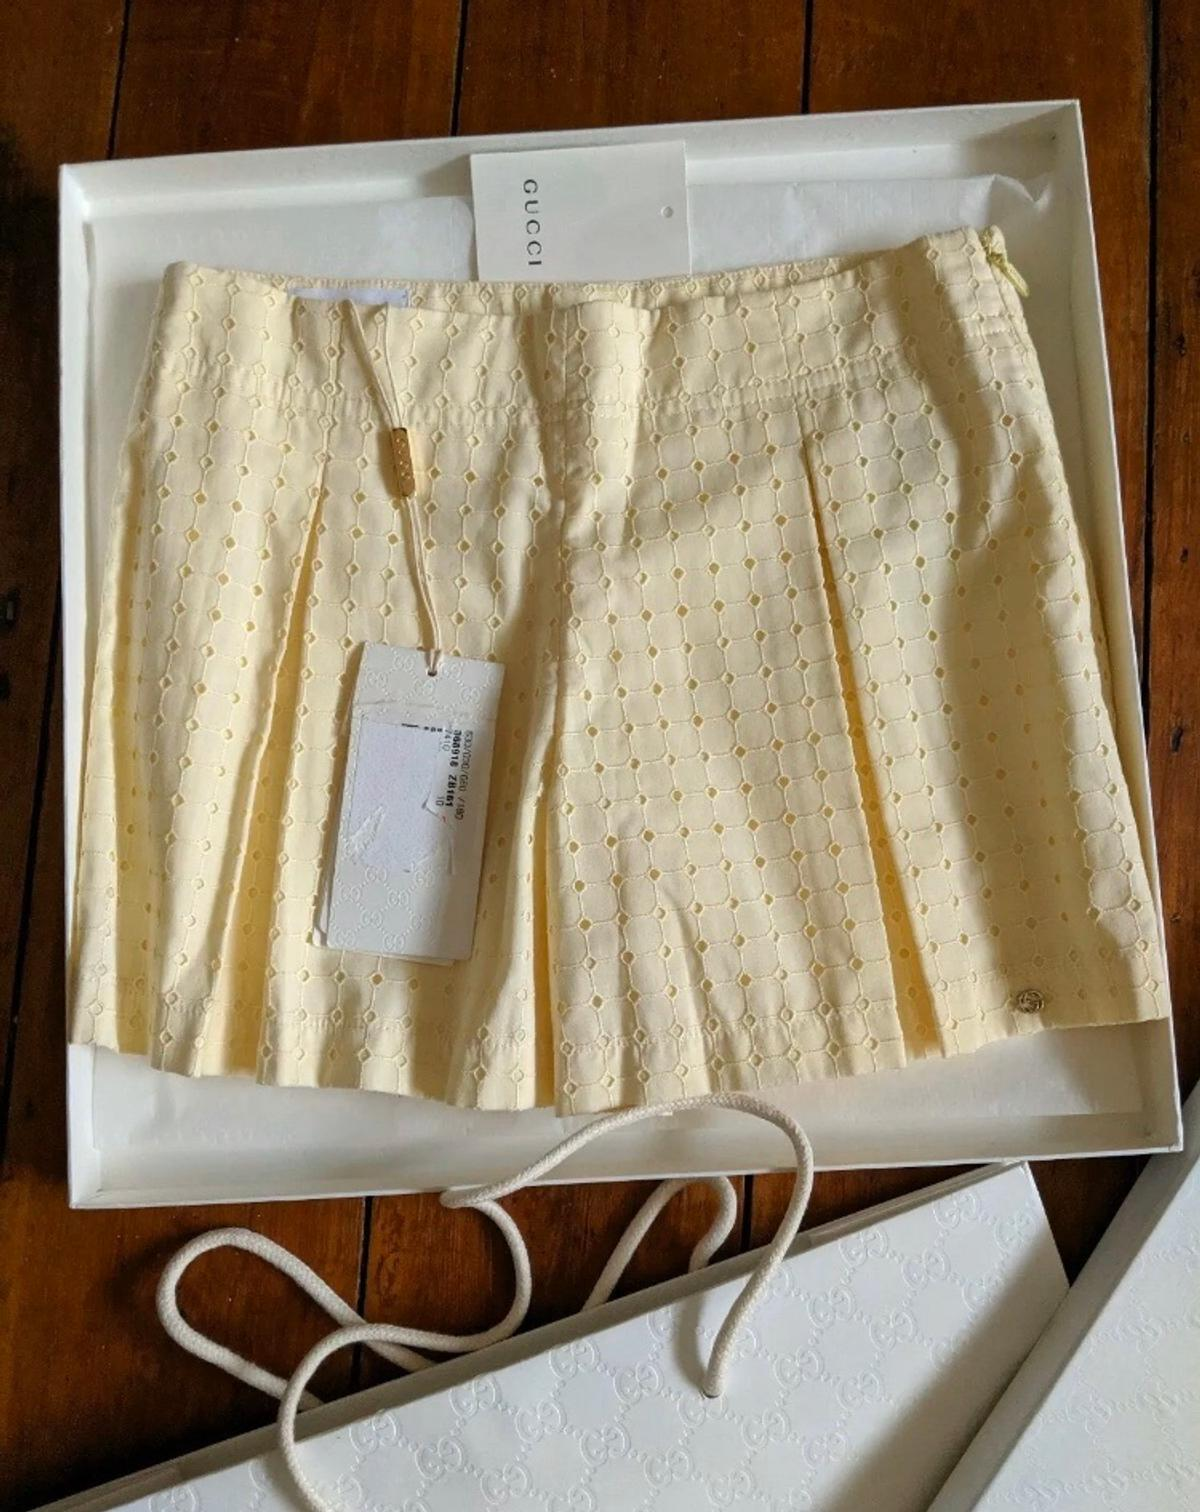 Gucci Girls Skort Shorts Skirt Age 10. Condition is New with tags. Dispatched with Royal Mail 2nd Class